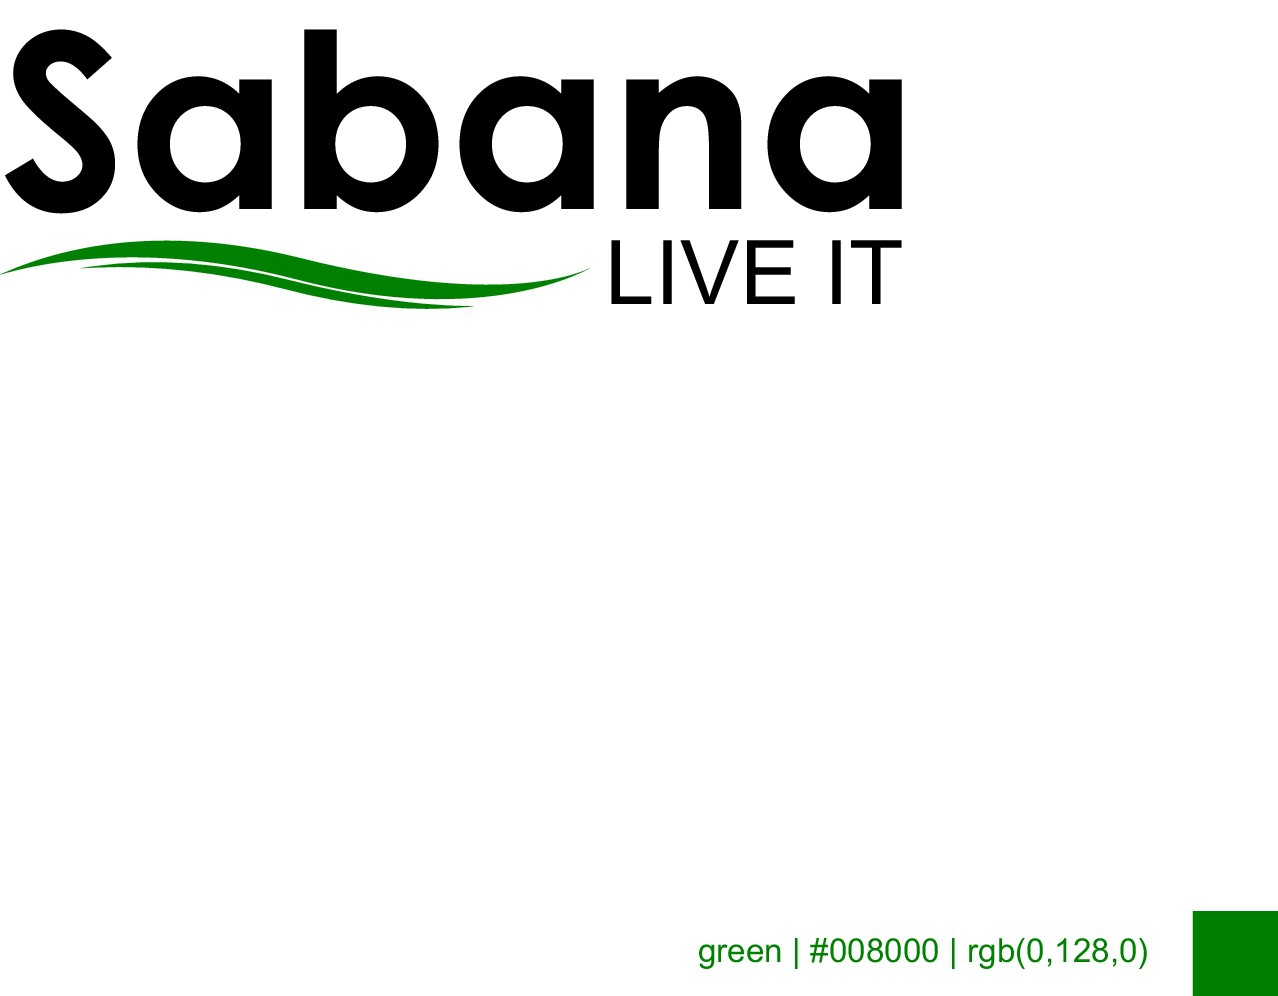 We need a flexible, standout, yet simple logo for Sabana Retail Products